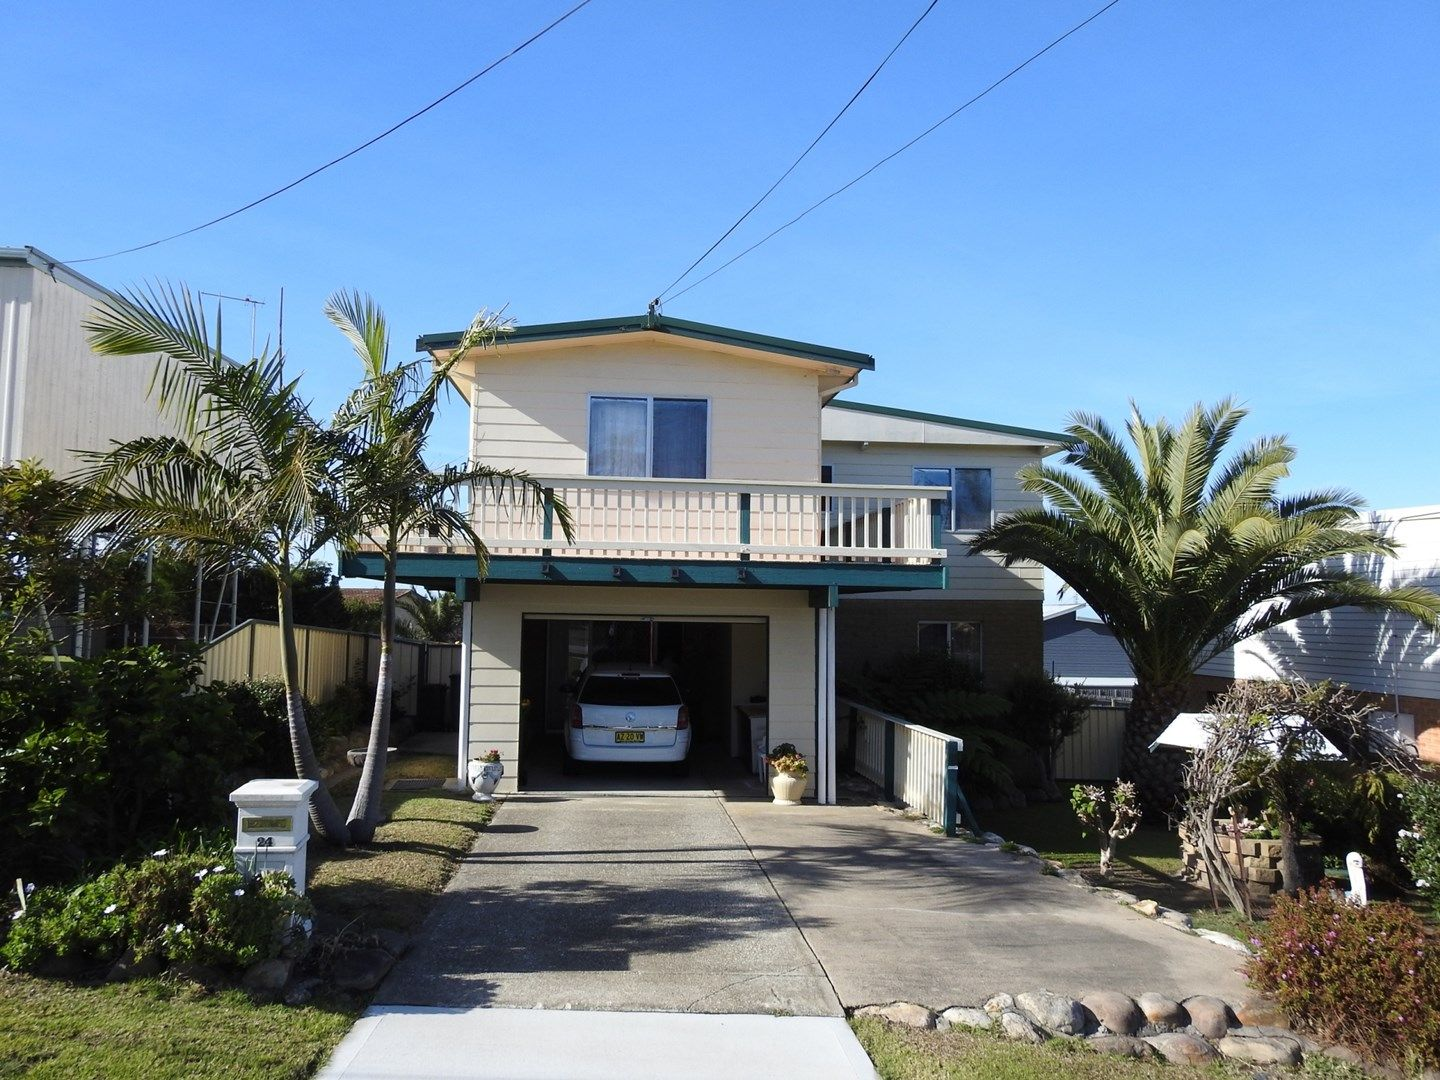 24 Bream Street, Tuross Head NSW 2537, Image 0